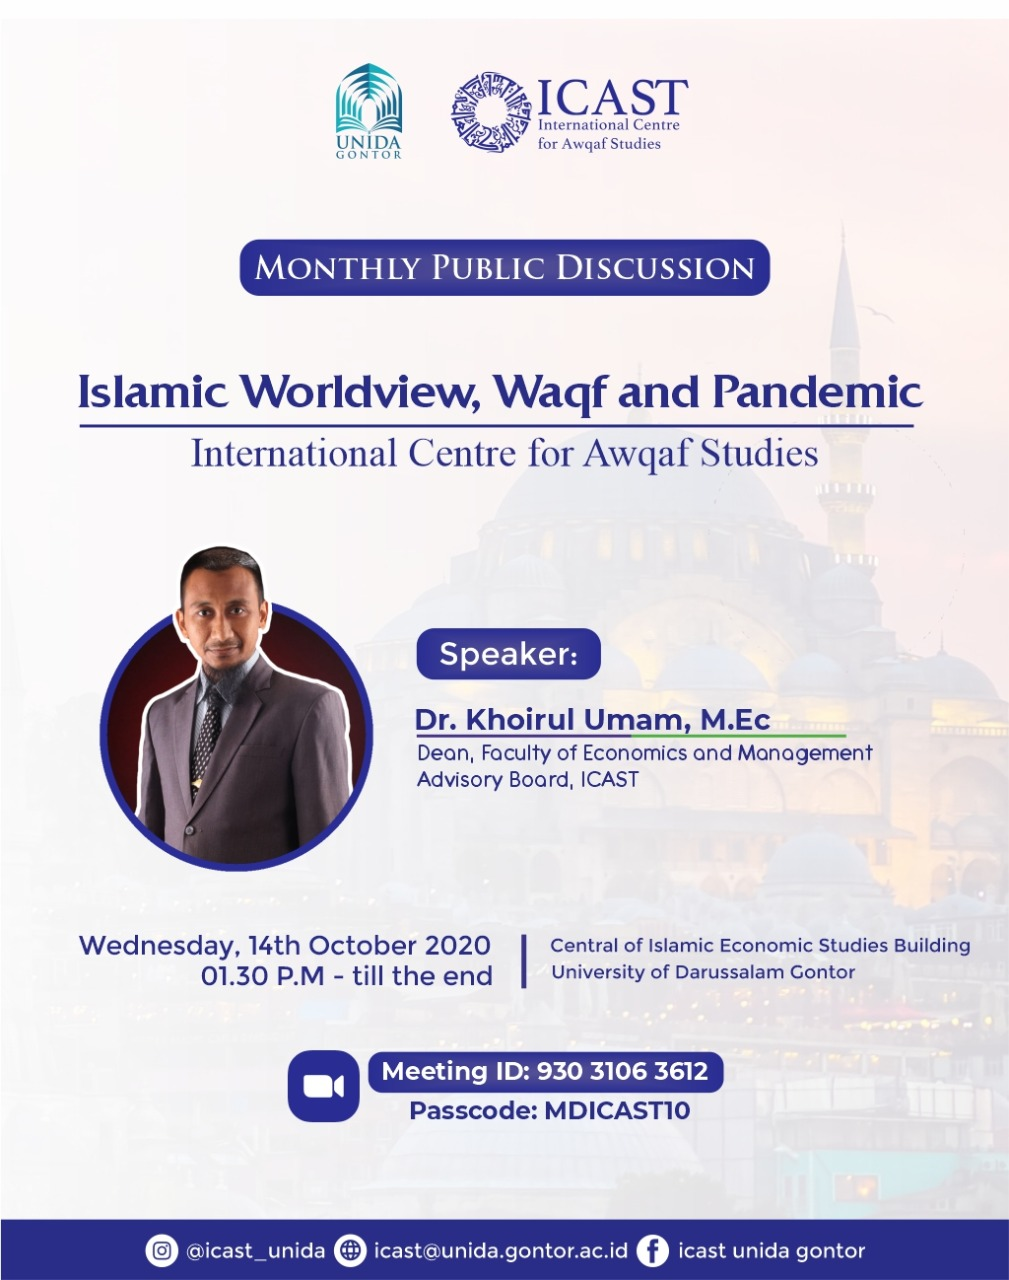 ICAST Monthly Discussion: Islamic Worldview, Waqf and Pandemic